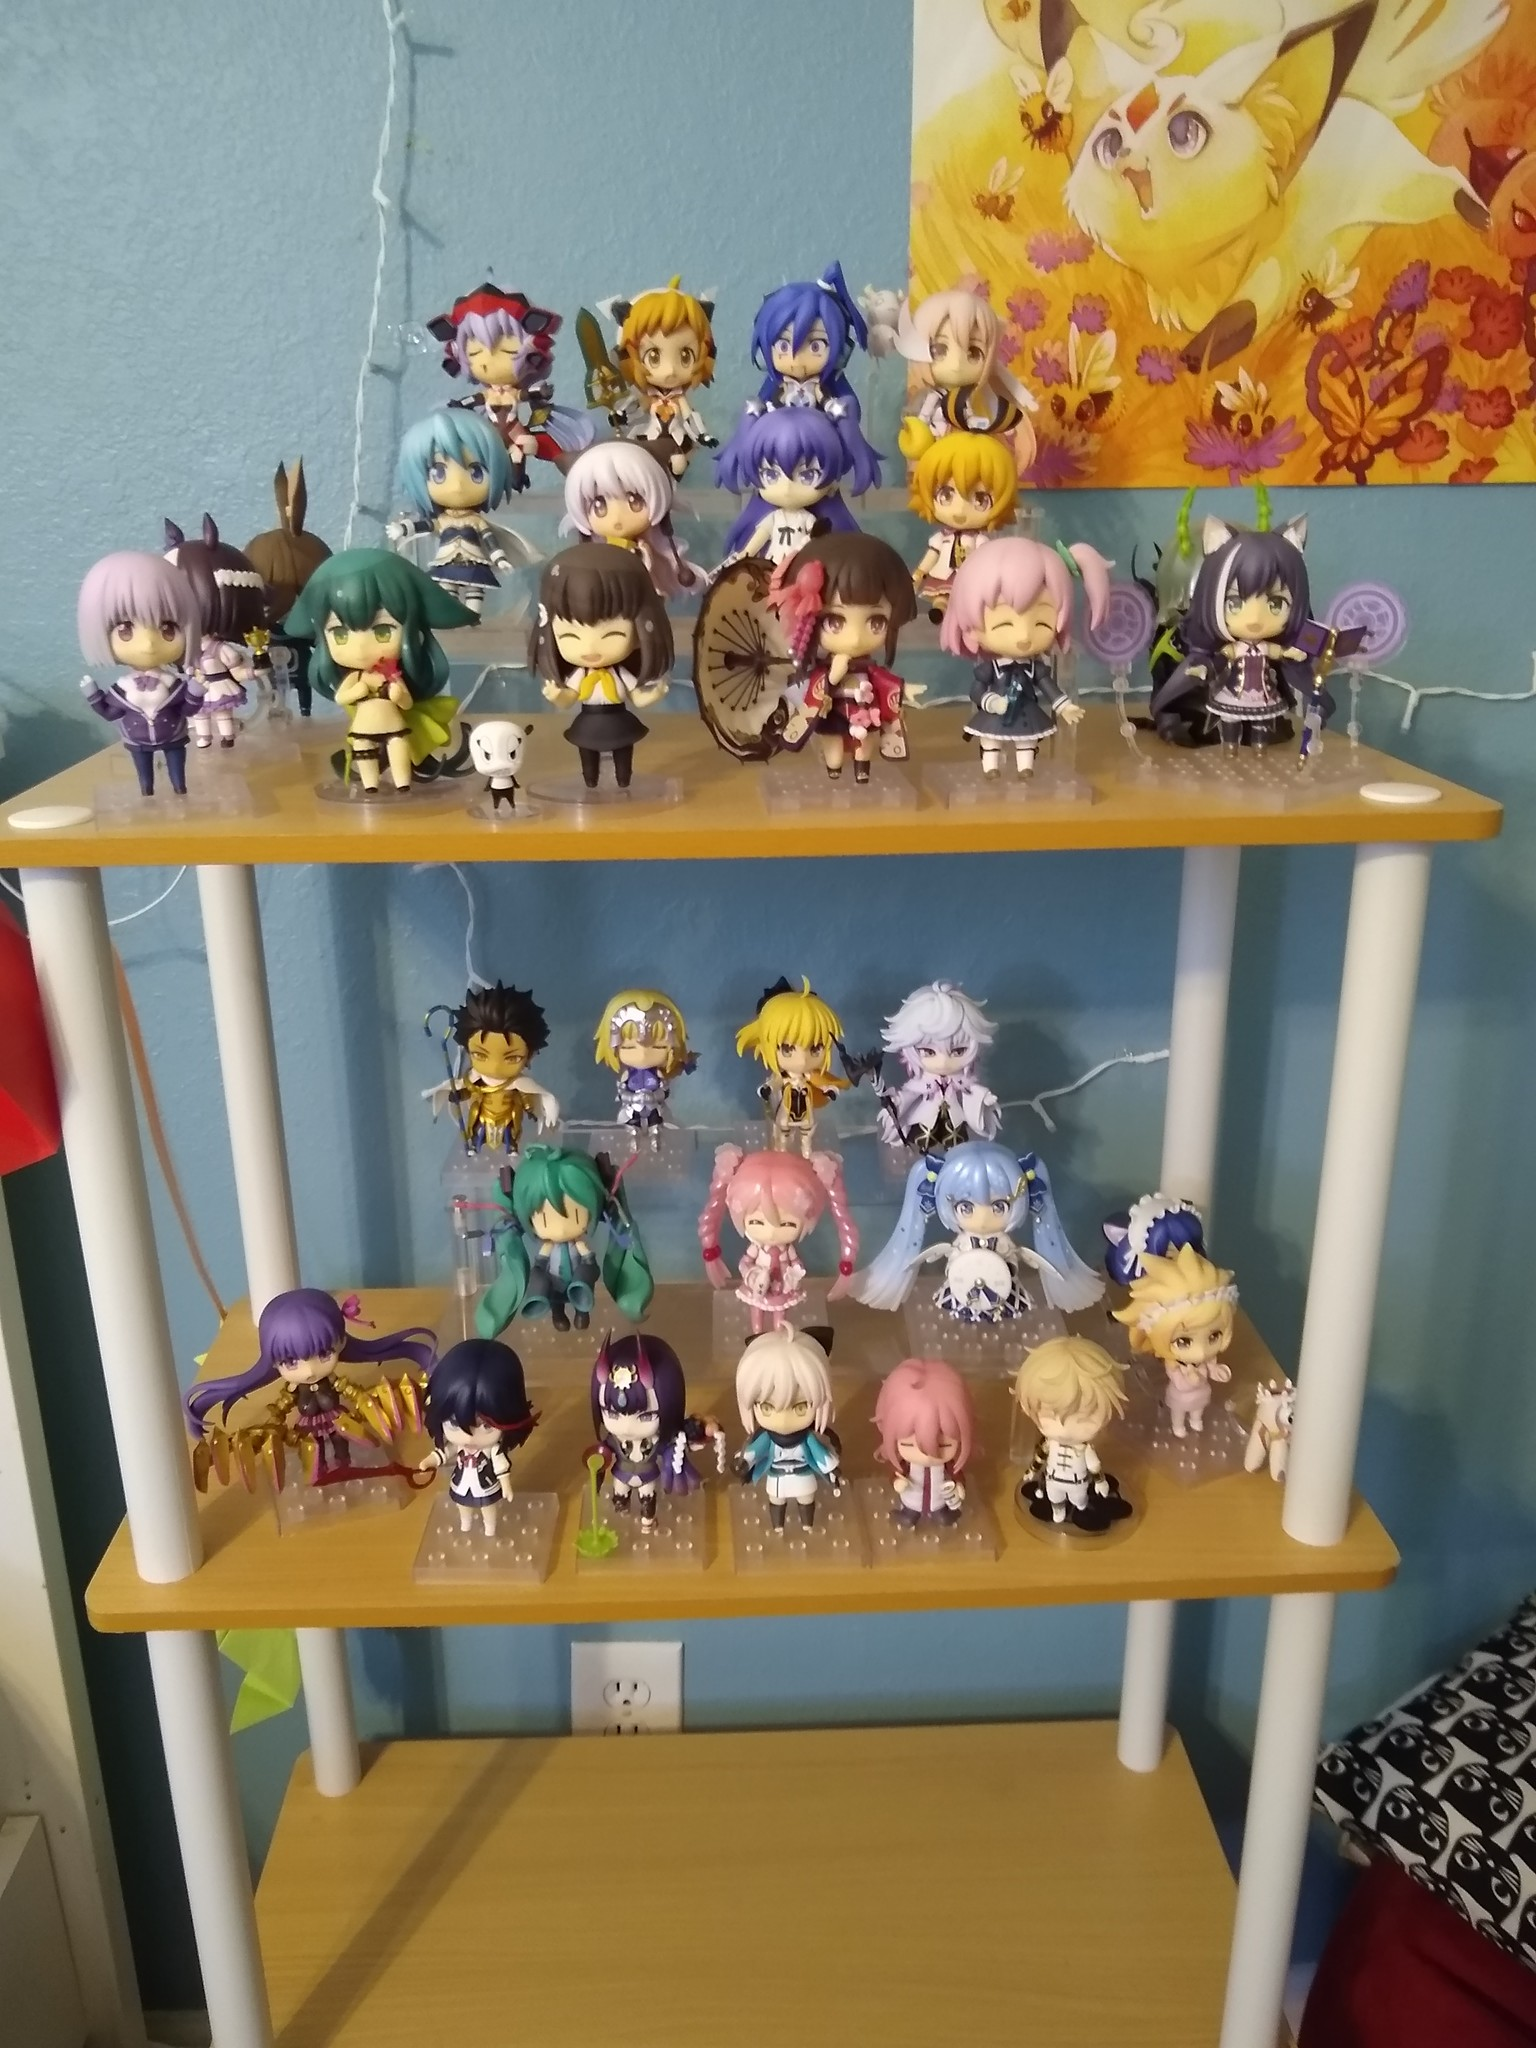 https://static.myfigurecollection.net/upload/pictures/2021/09/25/2863210.jpeg